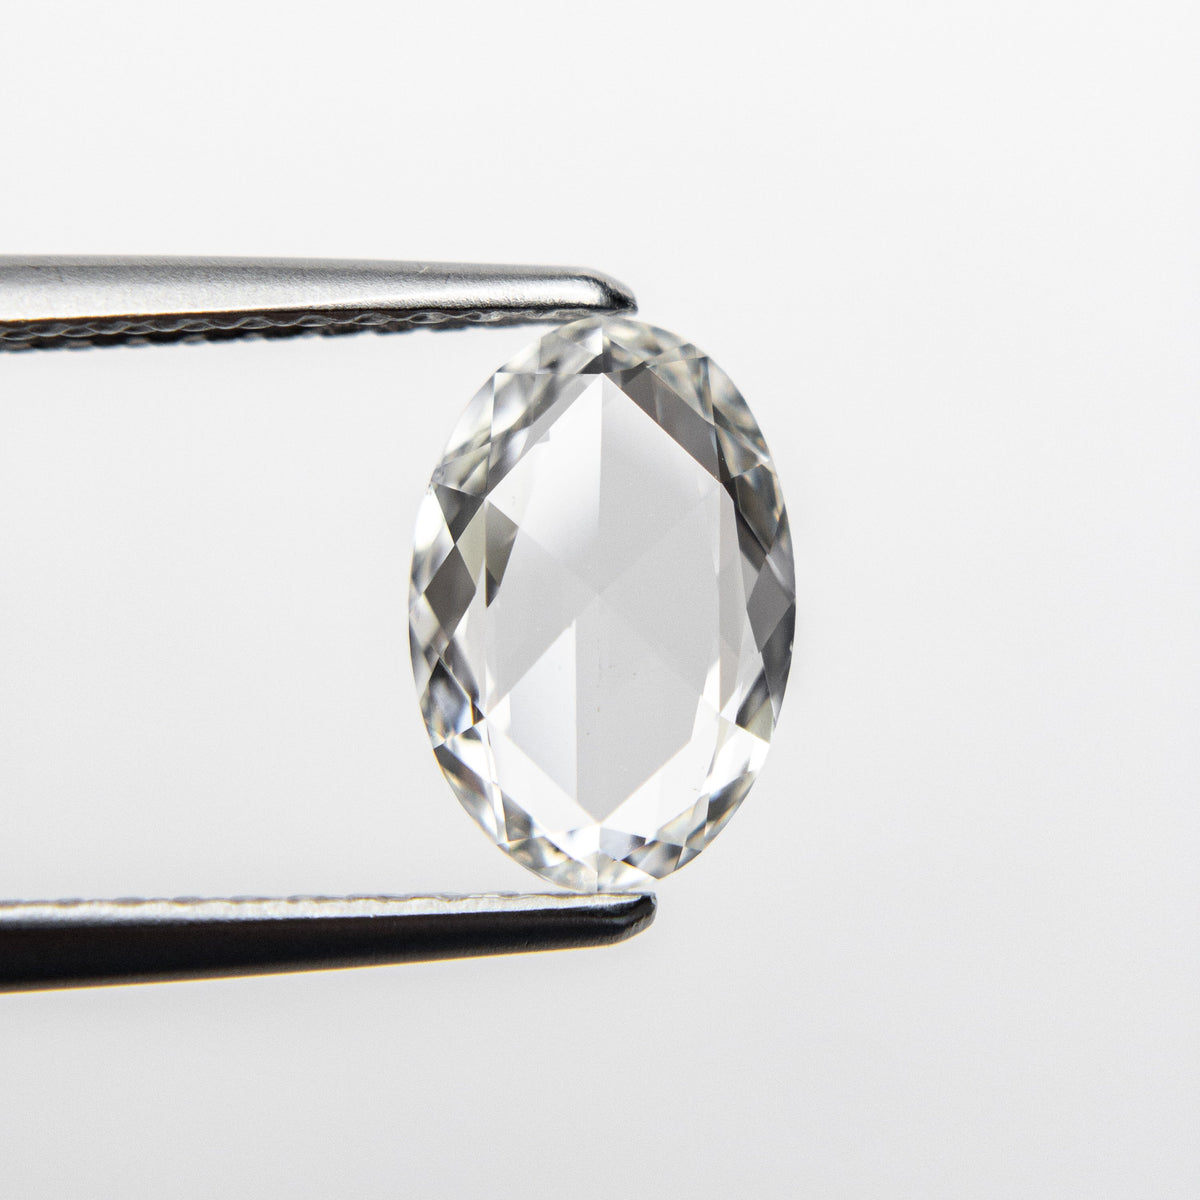 0.94ct 8.76x5.91x1.97mm GIA VS2 F Oval Rosecut 18601-01